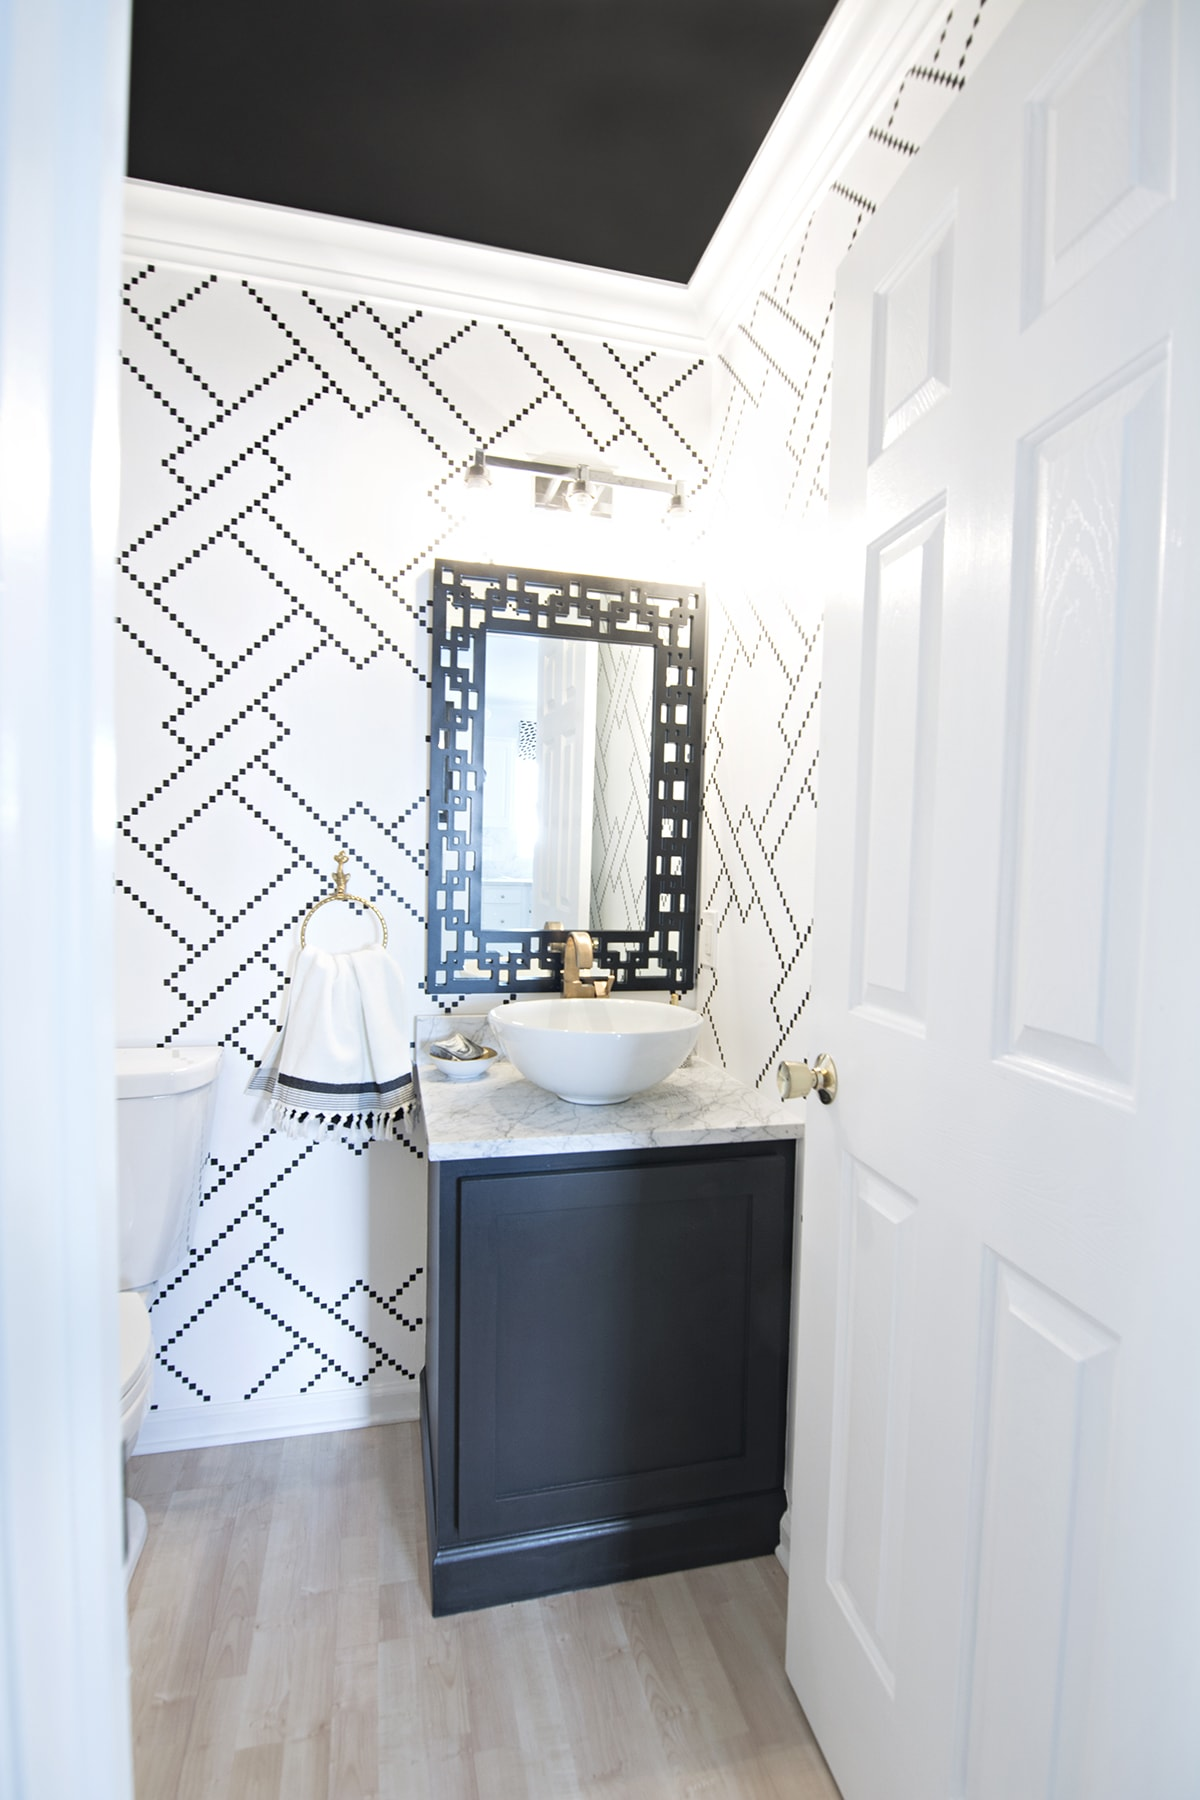 Room Design Black And White: Little Black Squares Stencil Wall